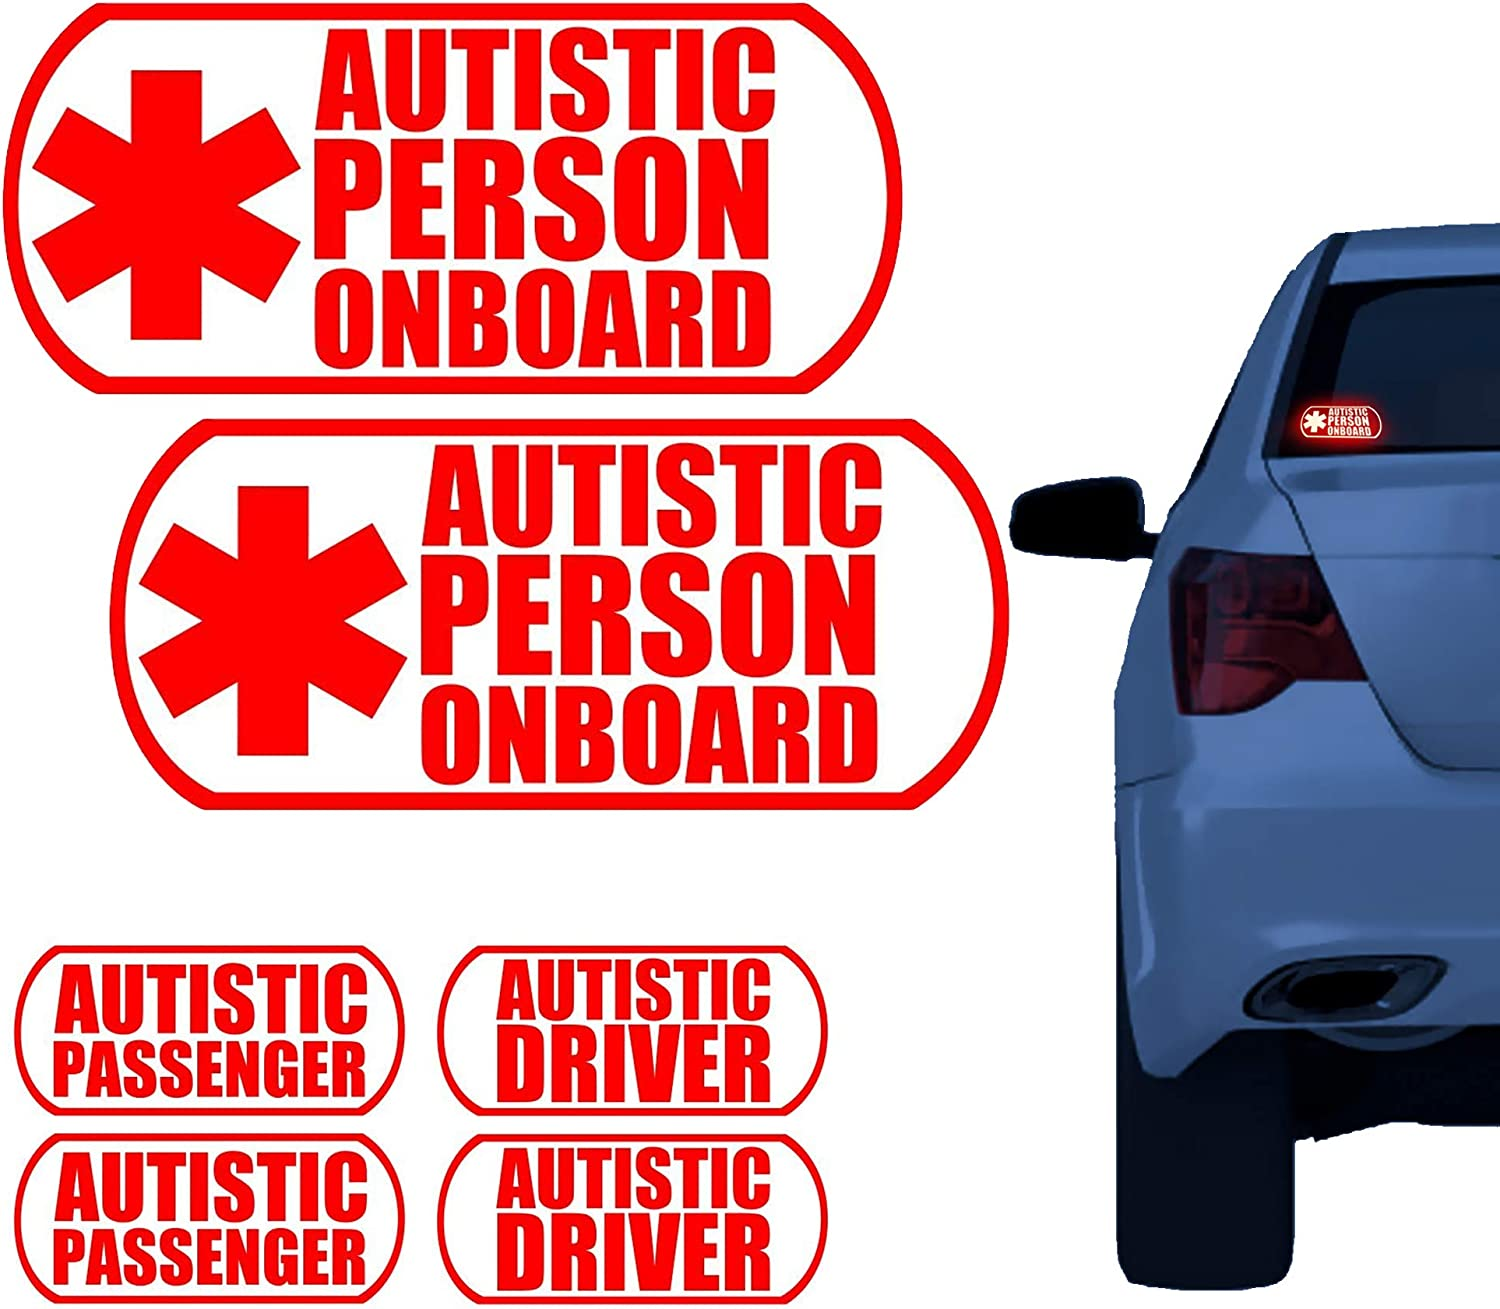 BriCals Vinyl Decals Autistic Ultra Reflective Medical Alert Car & Truck Window Decal Sticker, 2 Vehicle Pack, Autism Emergency Accessories, Rated for 7 Years Outdoors